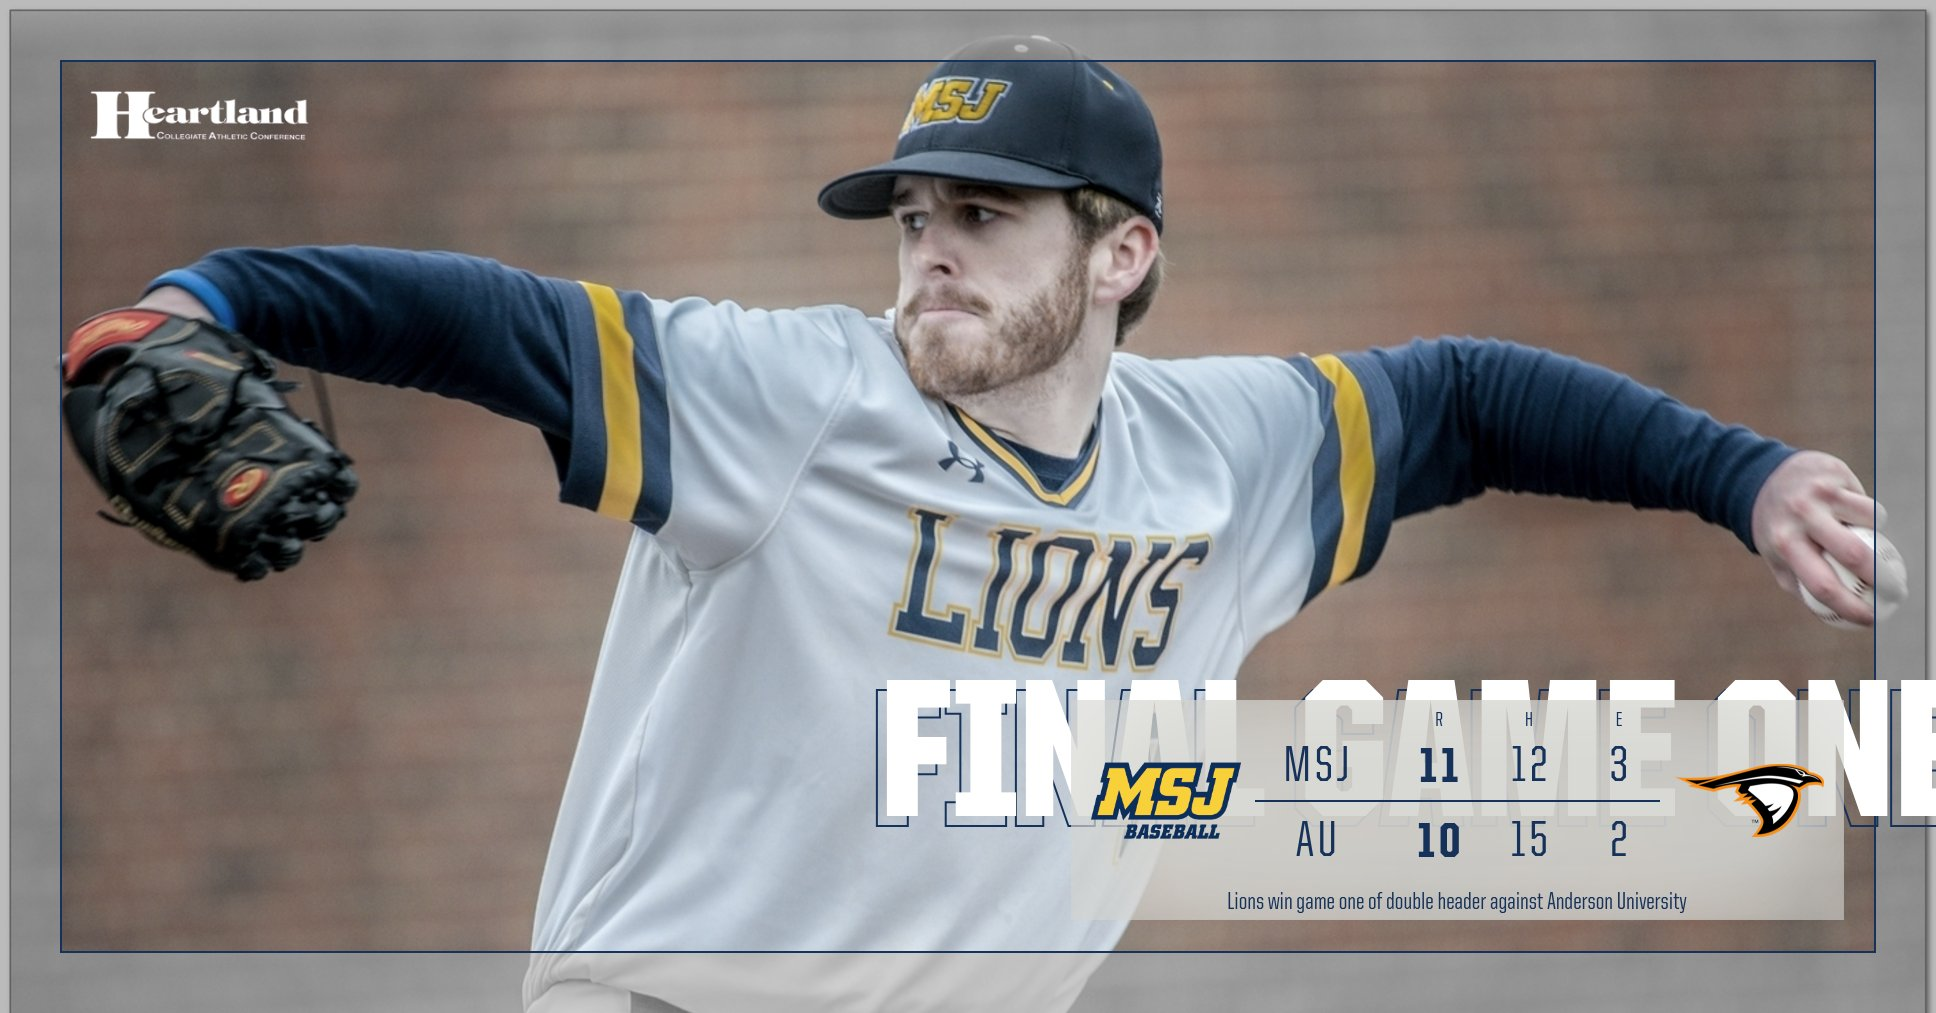 Lions Split Against Anderson University